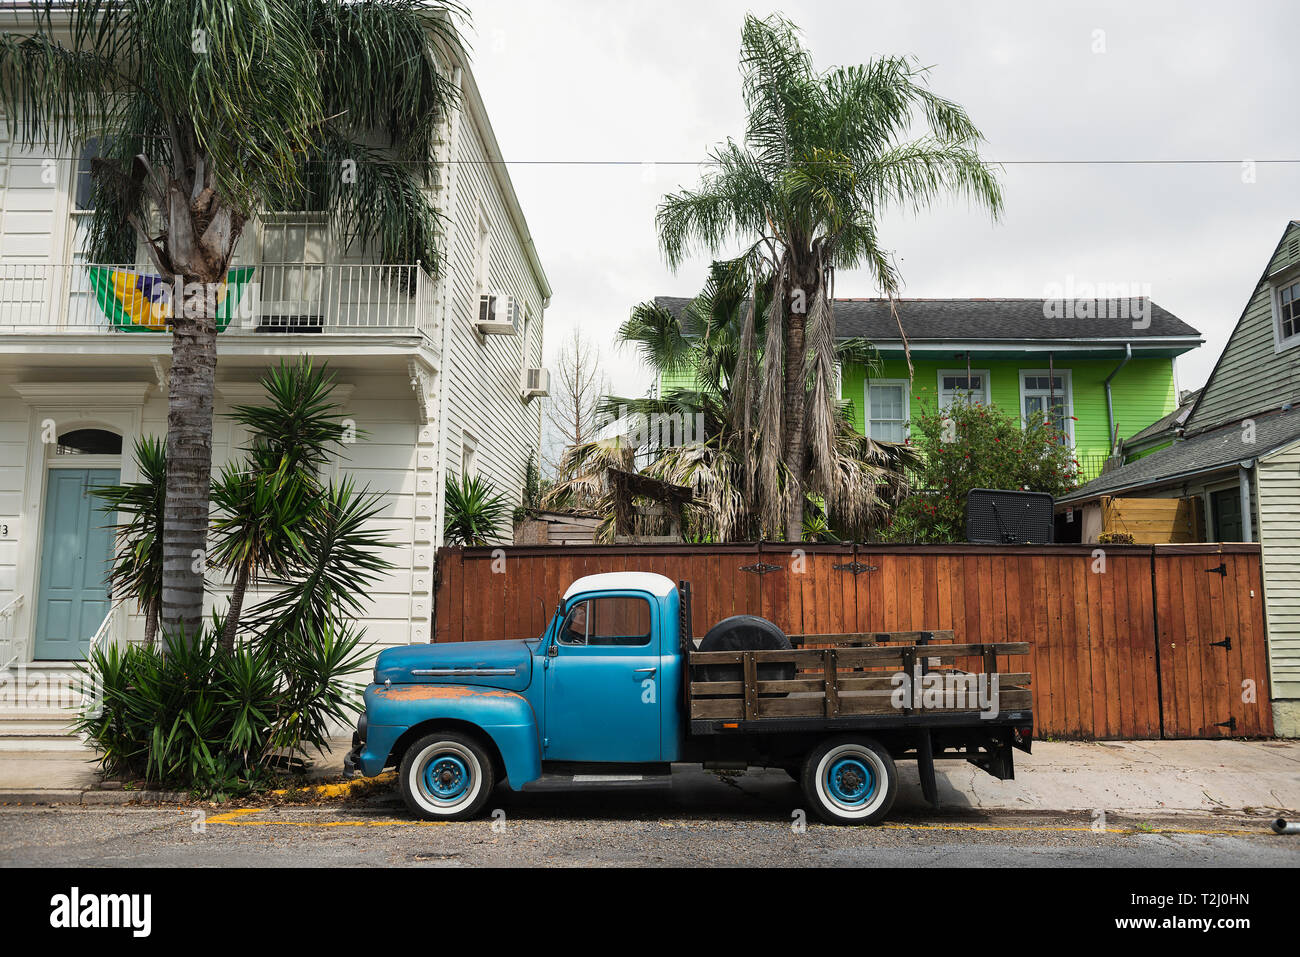 The Bywater neighborhood of New Orleans, Louisiana. Stock Photo